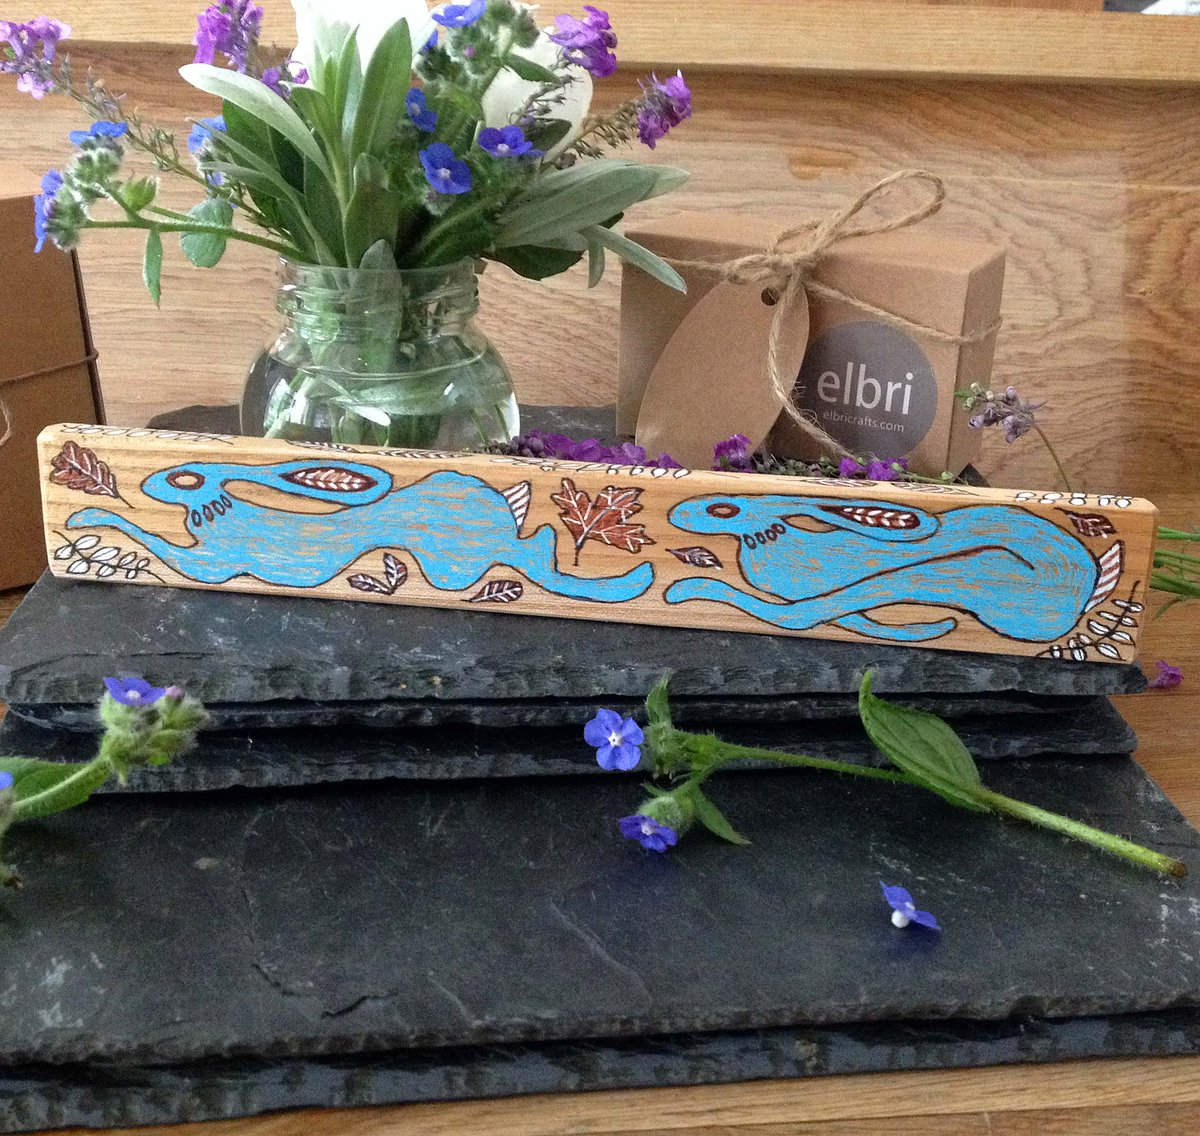 Evening #womaninbizhour We have these lovely hand painted Blue Hare sticks made from sustainable Scottish ash in store. Lovely for a gift or to brighten up your shelves! #hares #rabbits #ukcraft #shopindie  https://www. etsy.com/uk/listing/704 075220/wooden-blue-hare-stick-hand-painted?ref=shop_home_active_19&frs=1  … <br>http://pic.twitter.com/zbpz0p90FN